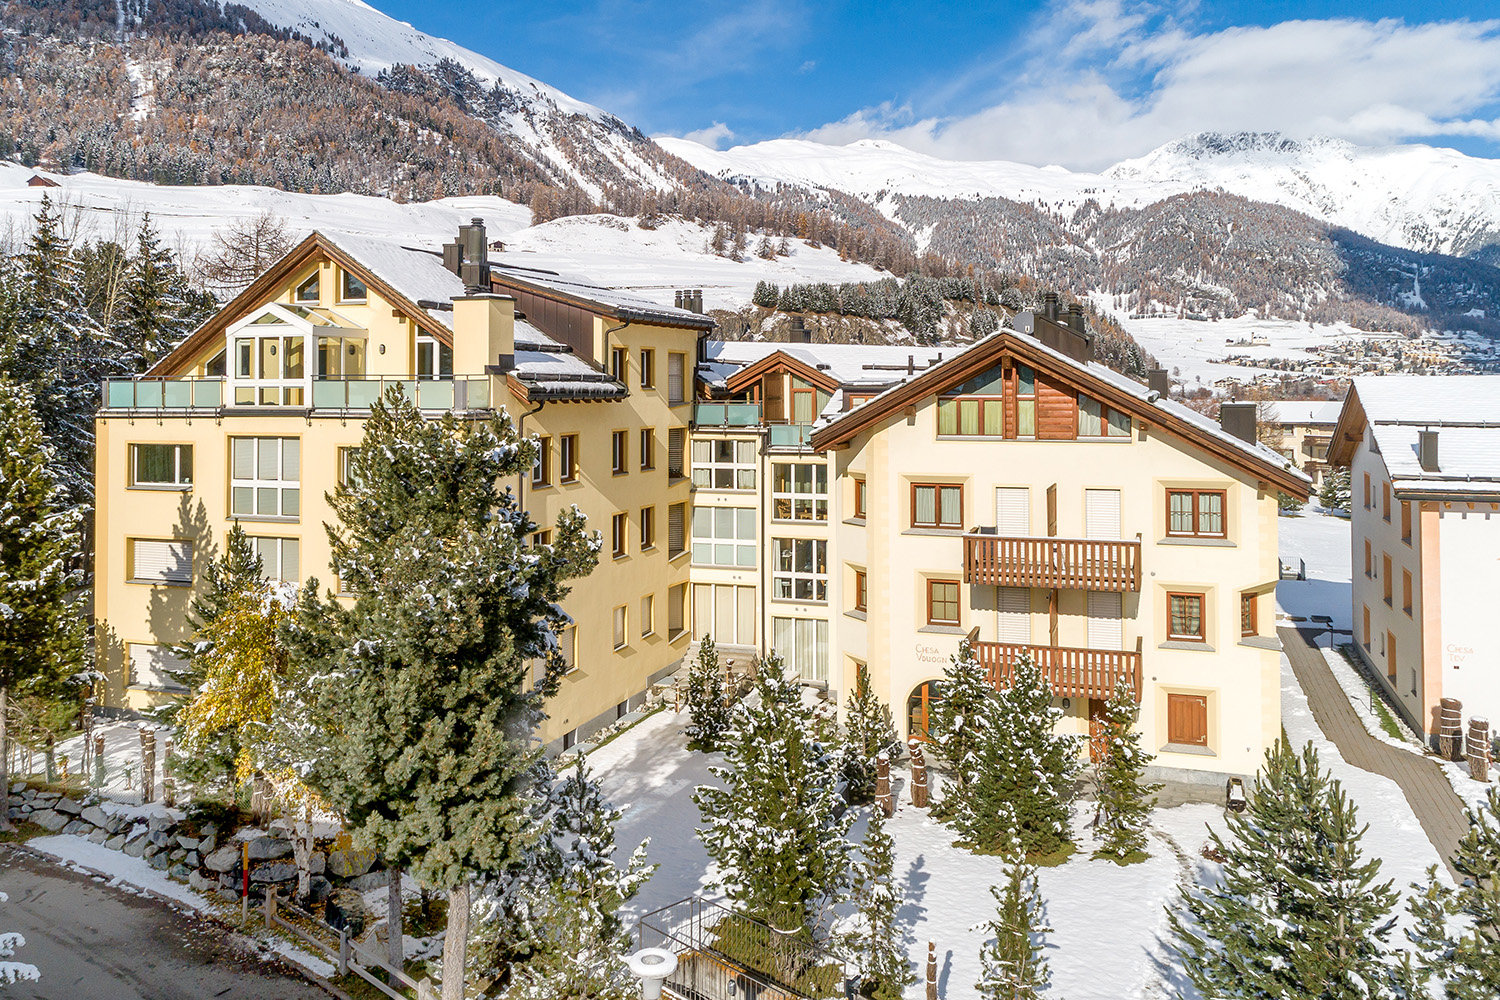 Apartment for sale in Celerina, Switzerland Alps - land